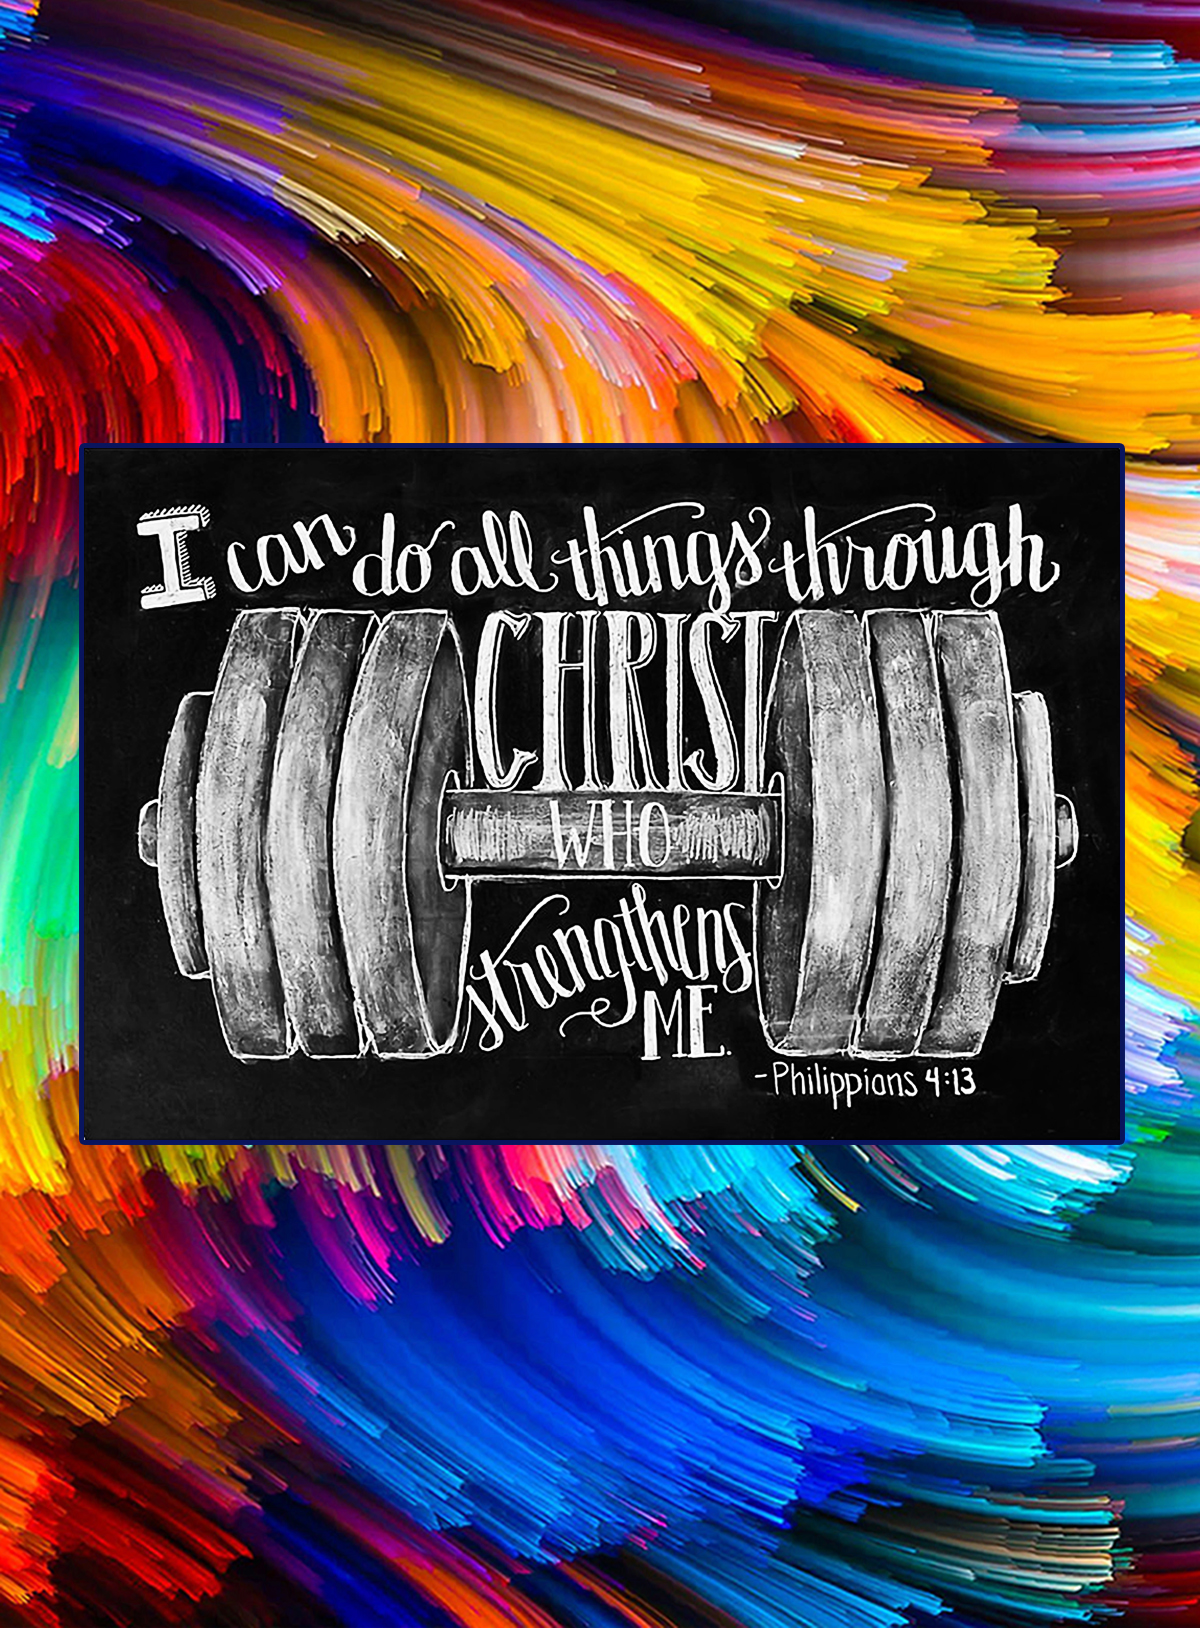 Fitness i can do all things through christ who strengthens me poster - A4